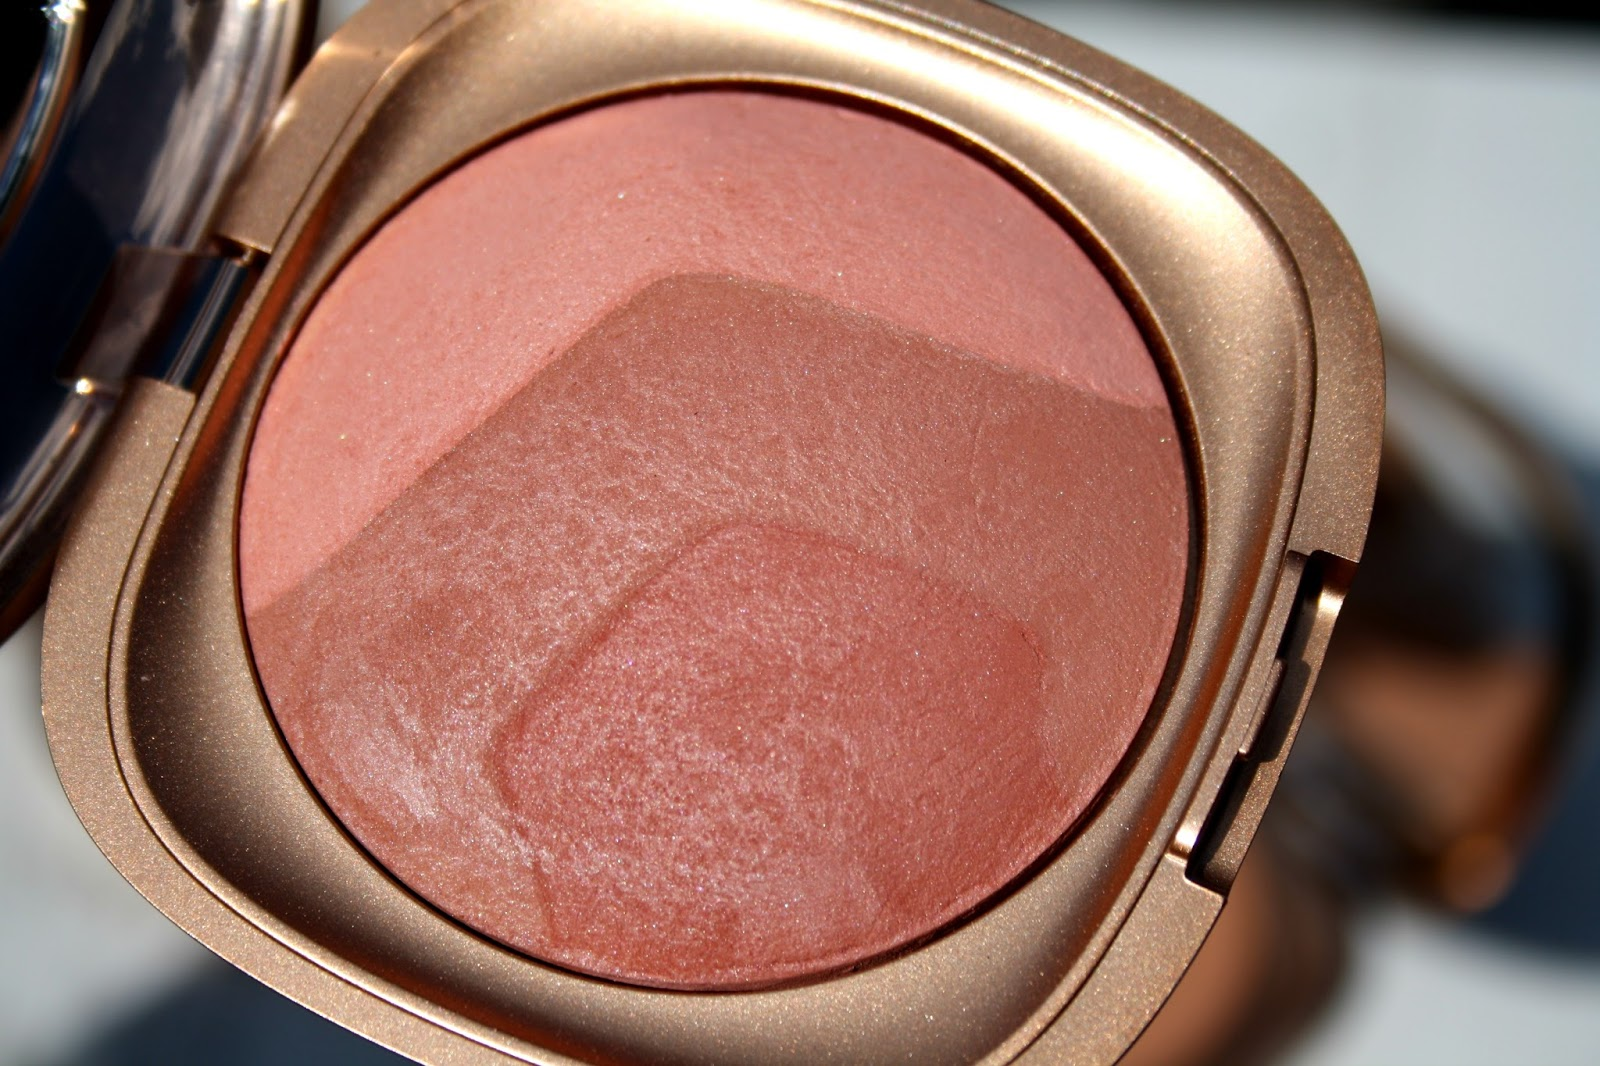 9a7b496c I have Lust Coral and like the baked bronzer, the texture is light and  silky and is a case of a little going a long way as it glides onto the skin.